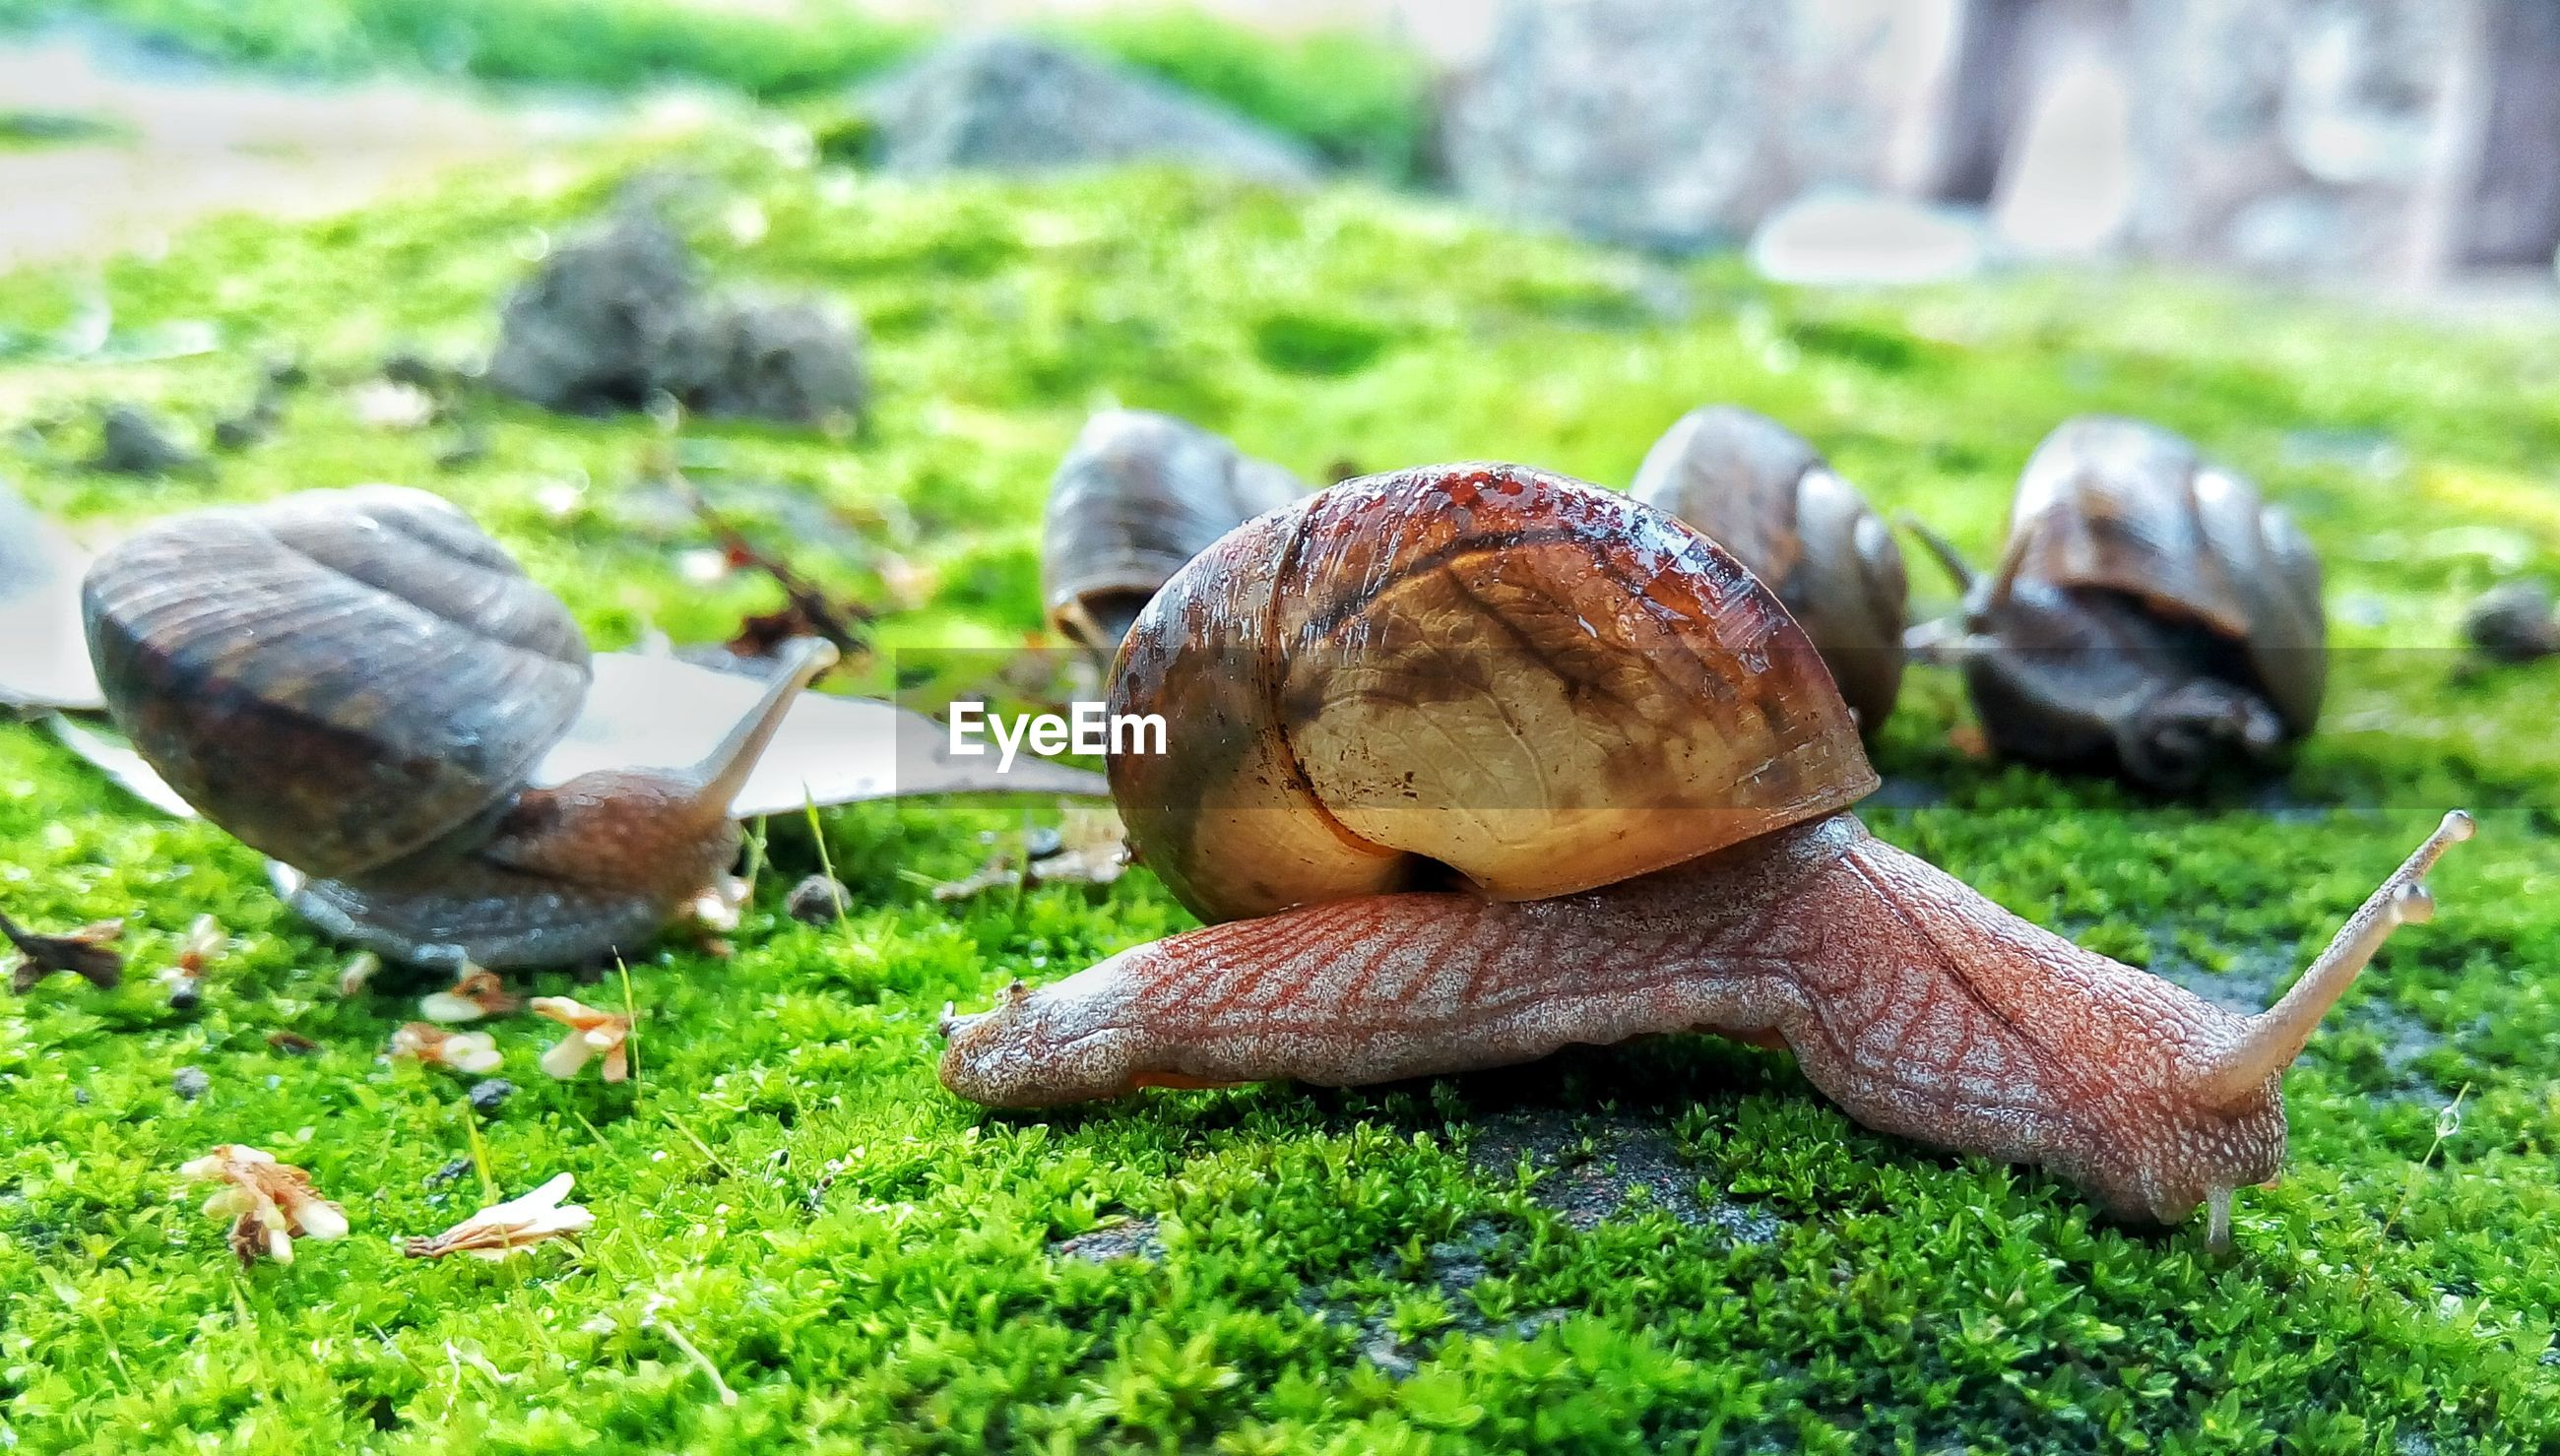 Close-up of snails crawling outdoors